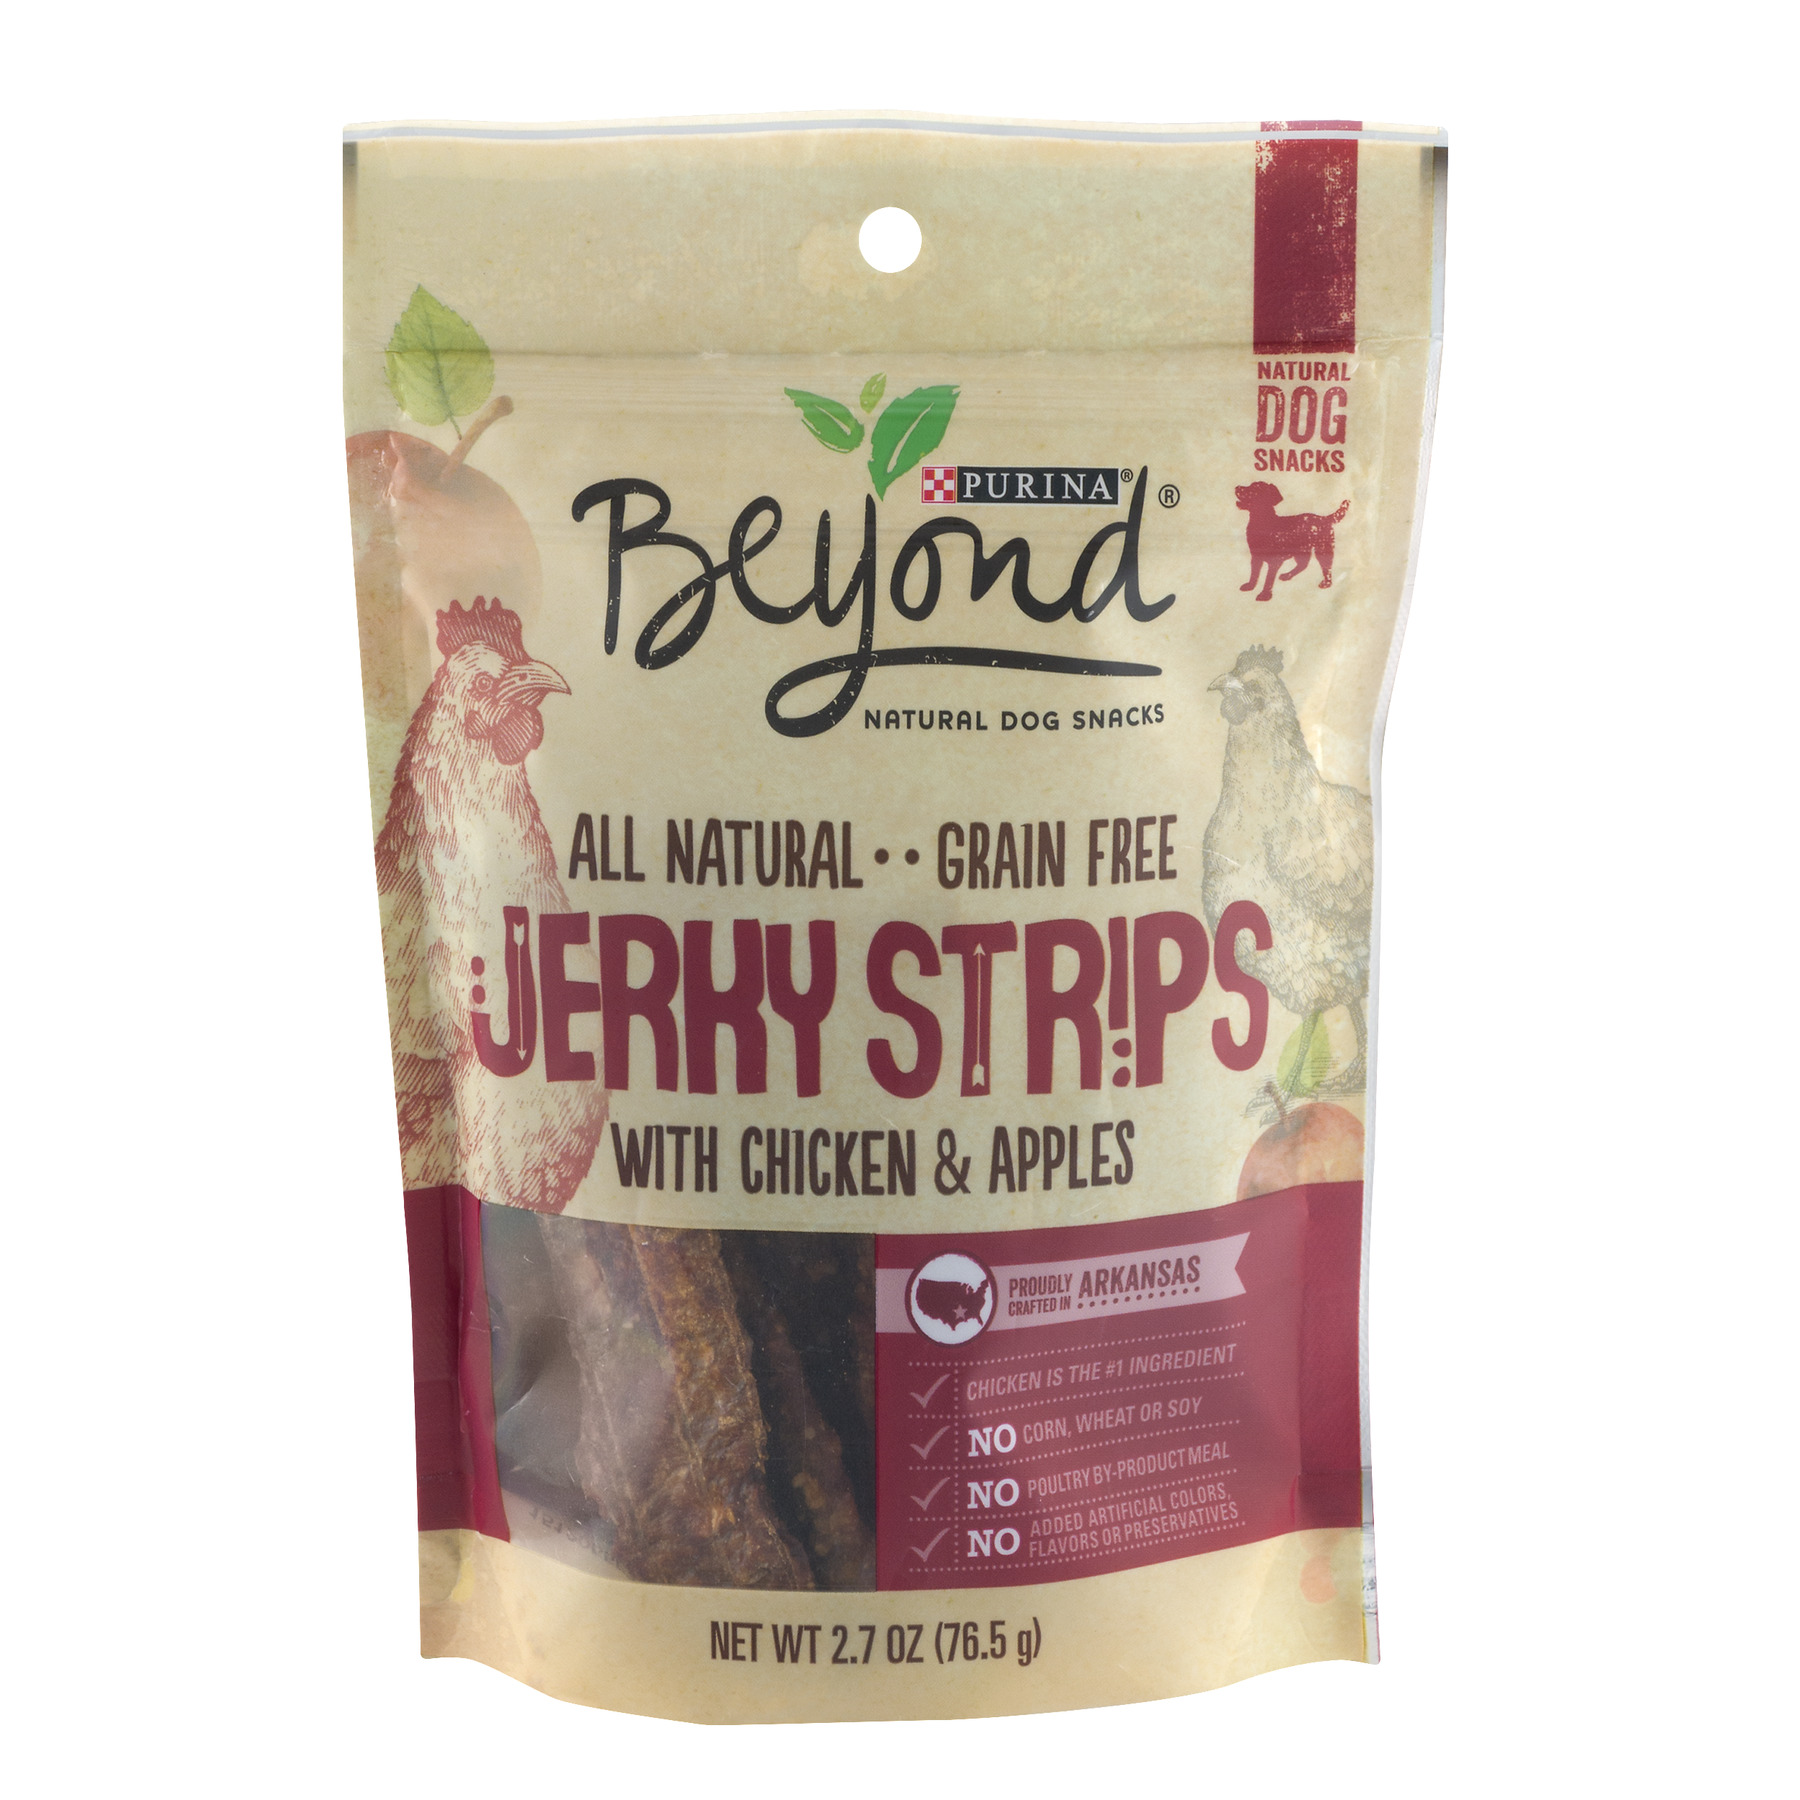 Purina Beyond All Natural Grain Free Jerky Strips With Chicken & Apples Dog Treats, 2.7 Oz.